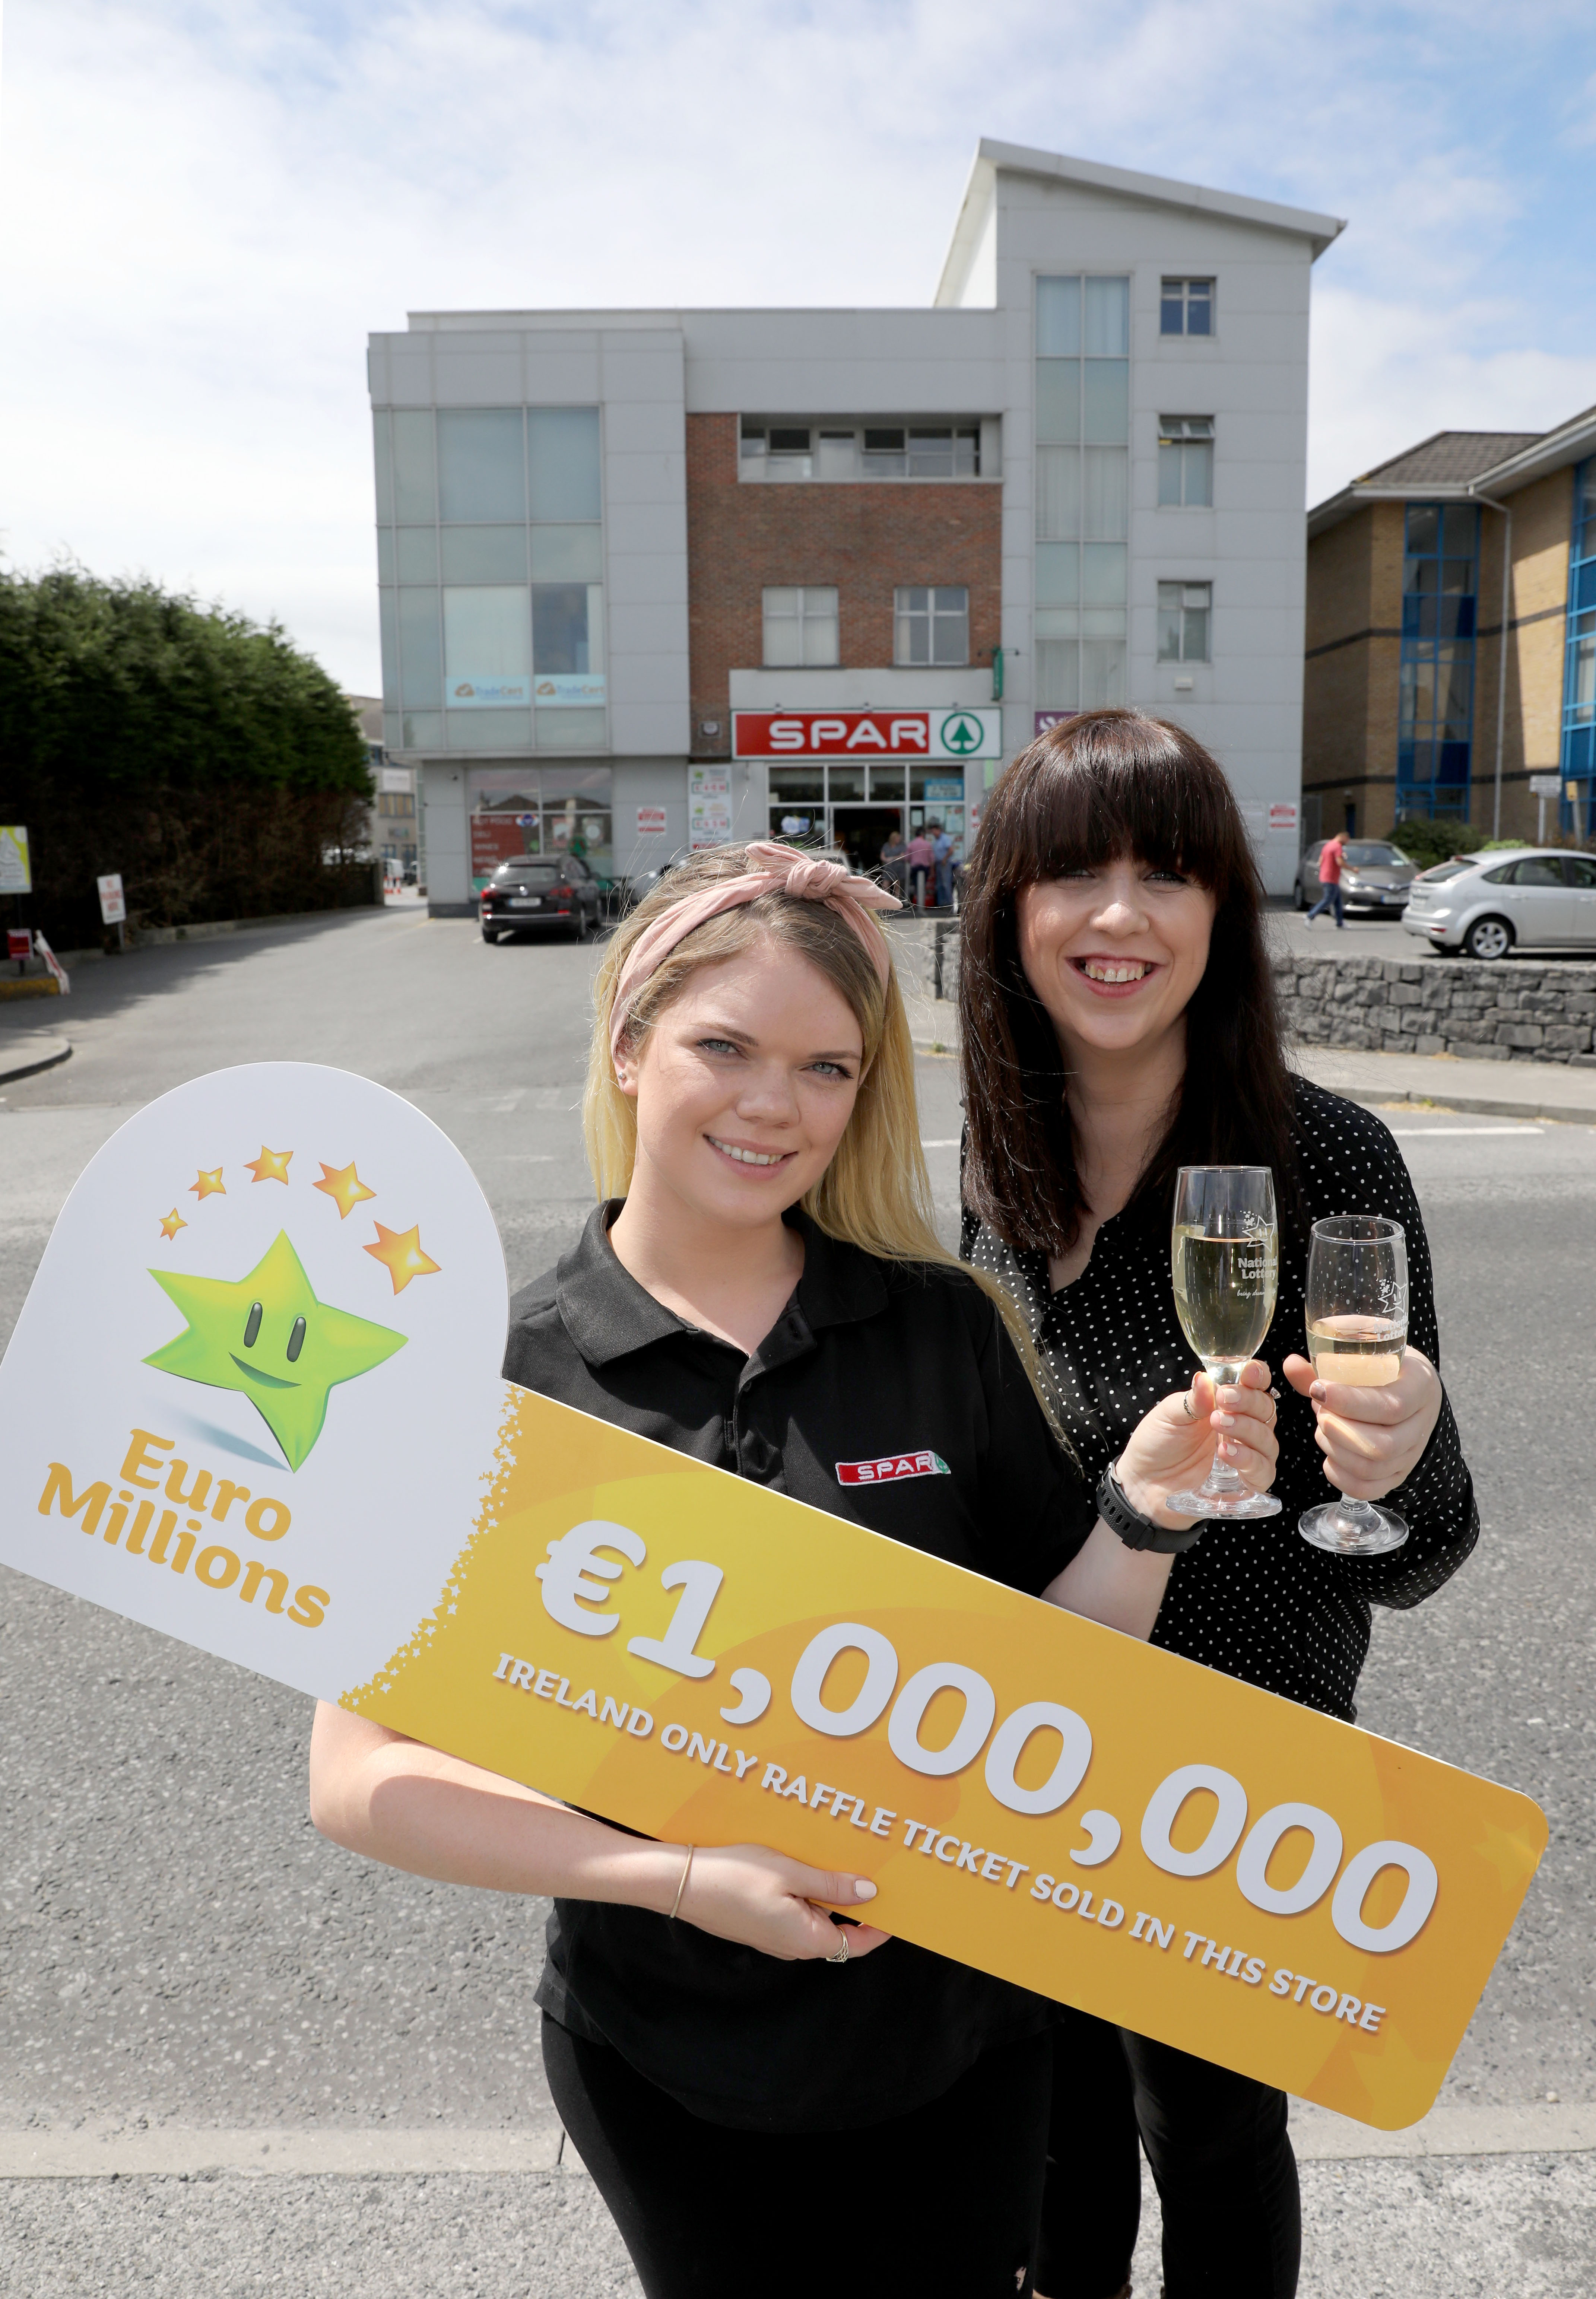 Galway work syndicate determined to keep €1m Euromillions win top secret!